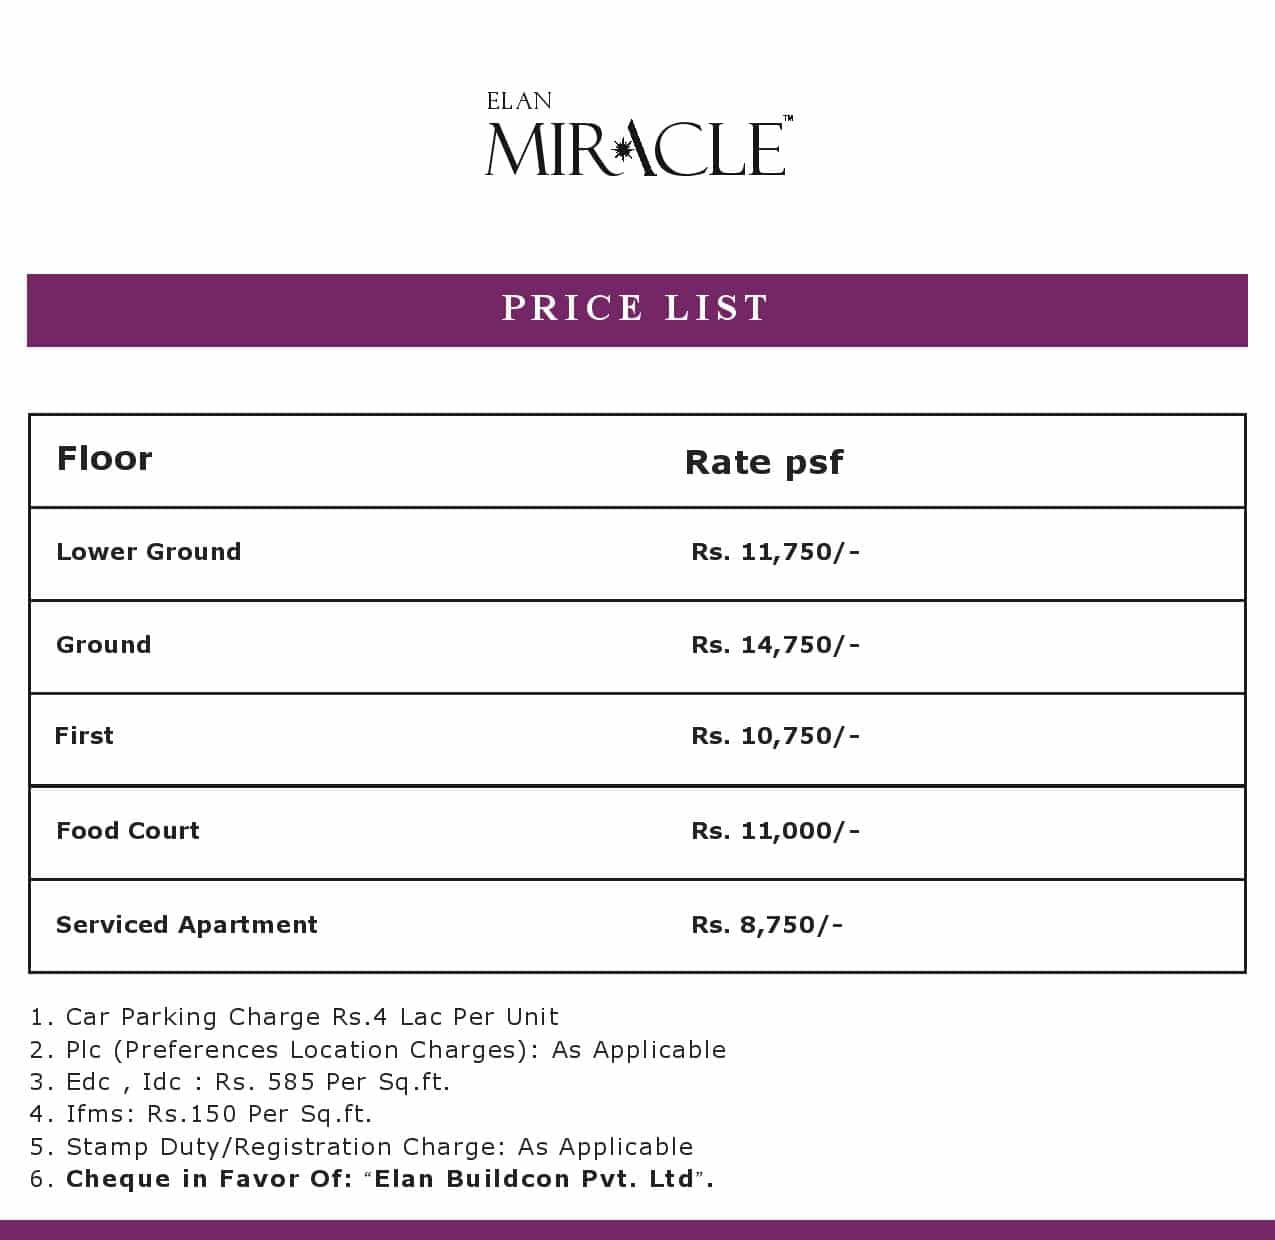 Elan-Miracle Price List